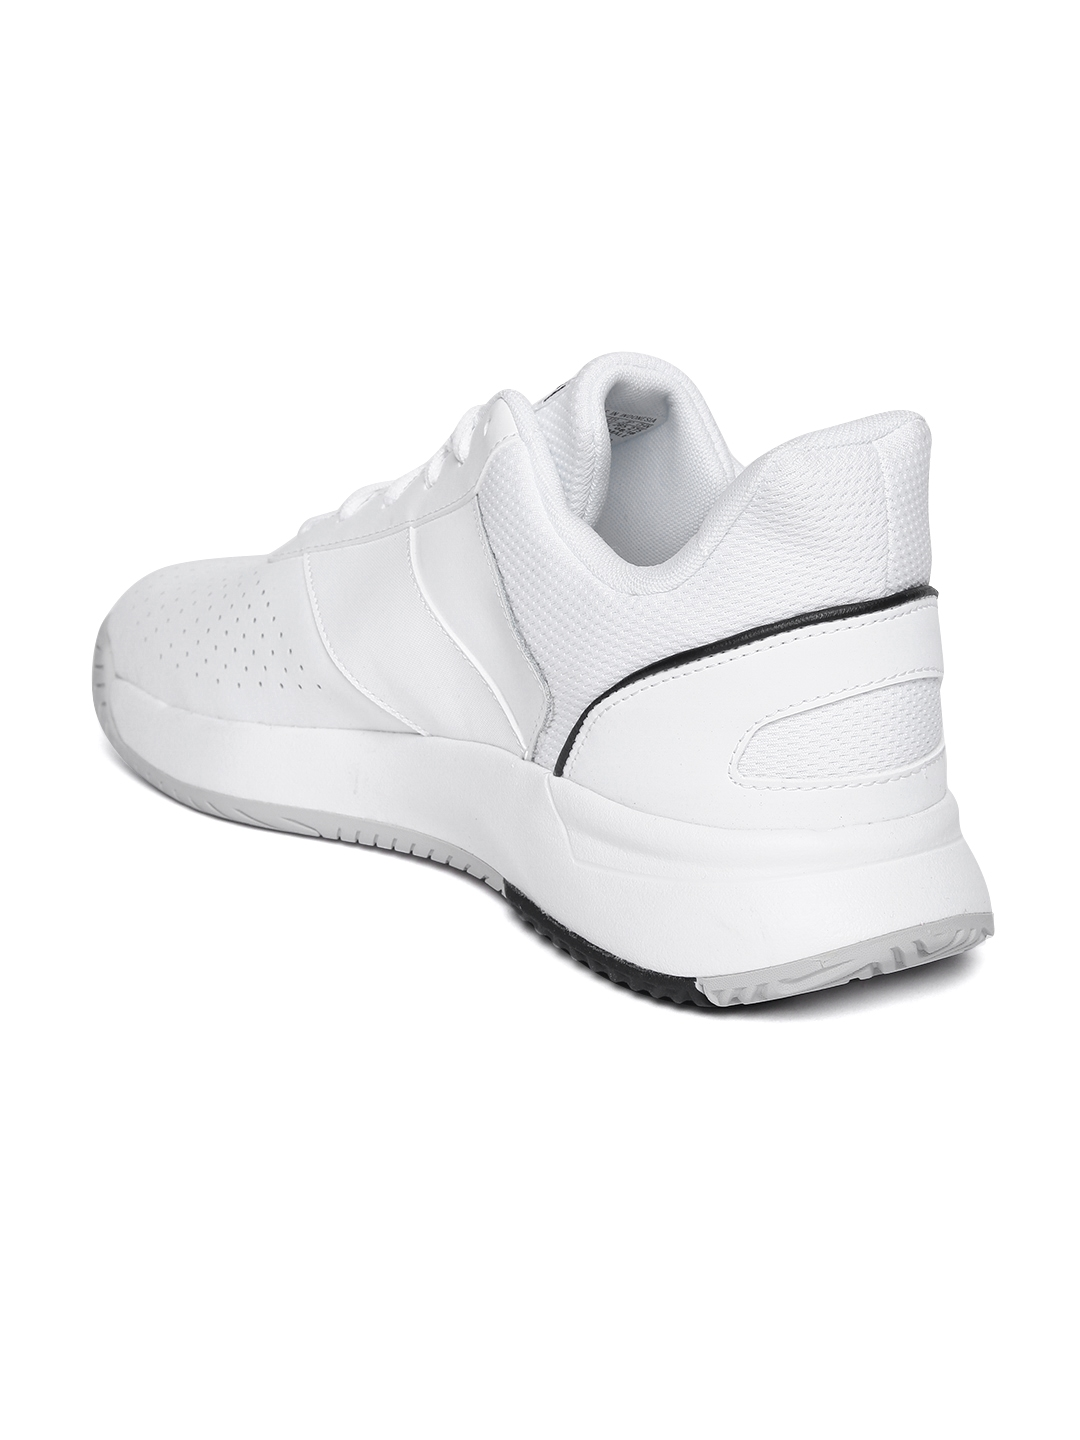 483c2819b Buy ADIDAS Men White COURTSMASH Tennis Leather Shoes - Sports Shoes ...